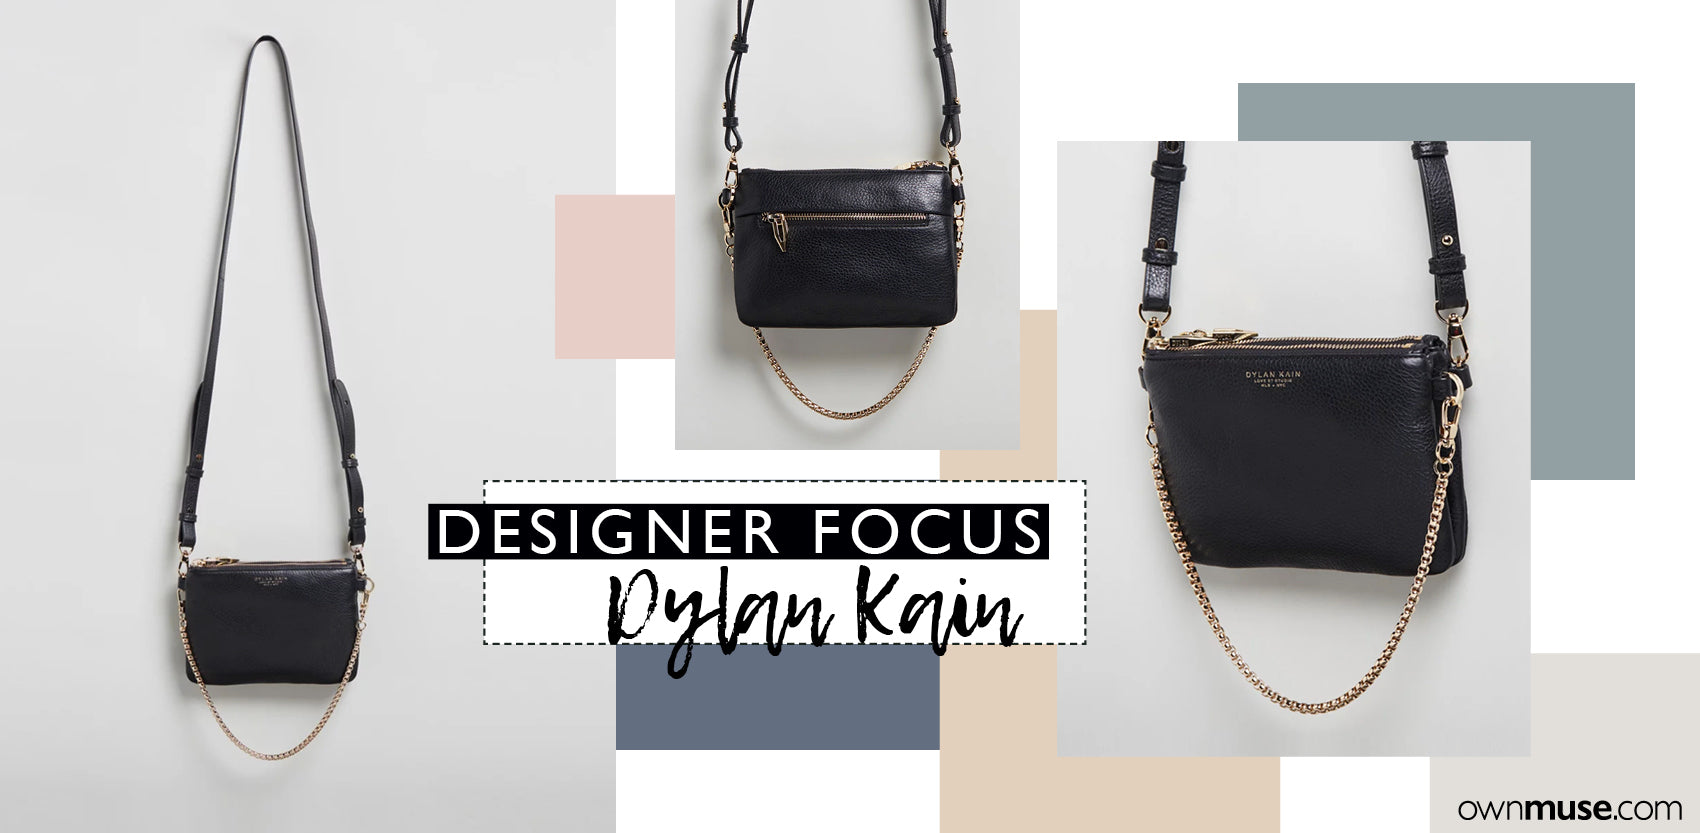 Dylan Kain The LSC - Original Black shoulder bag ownmuse.com